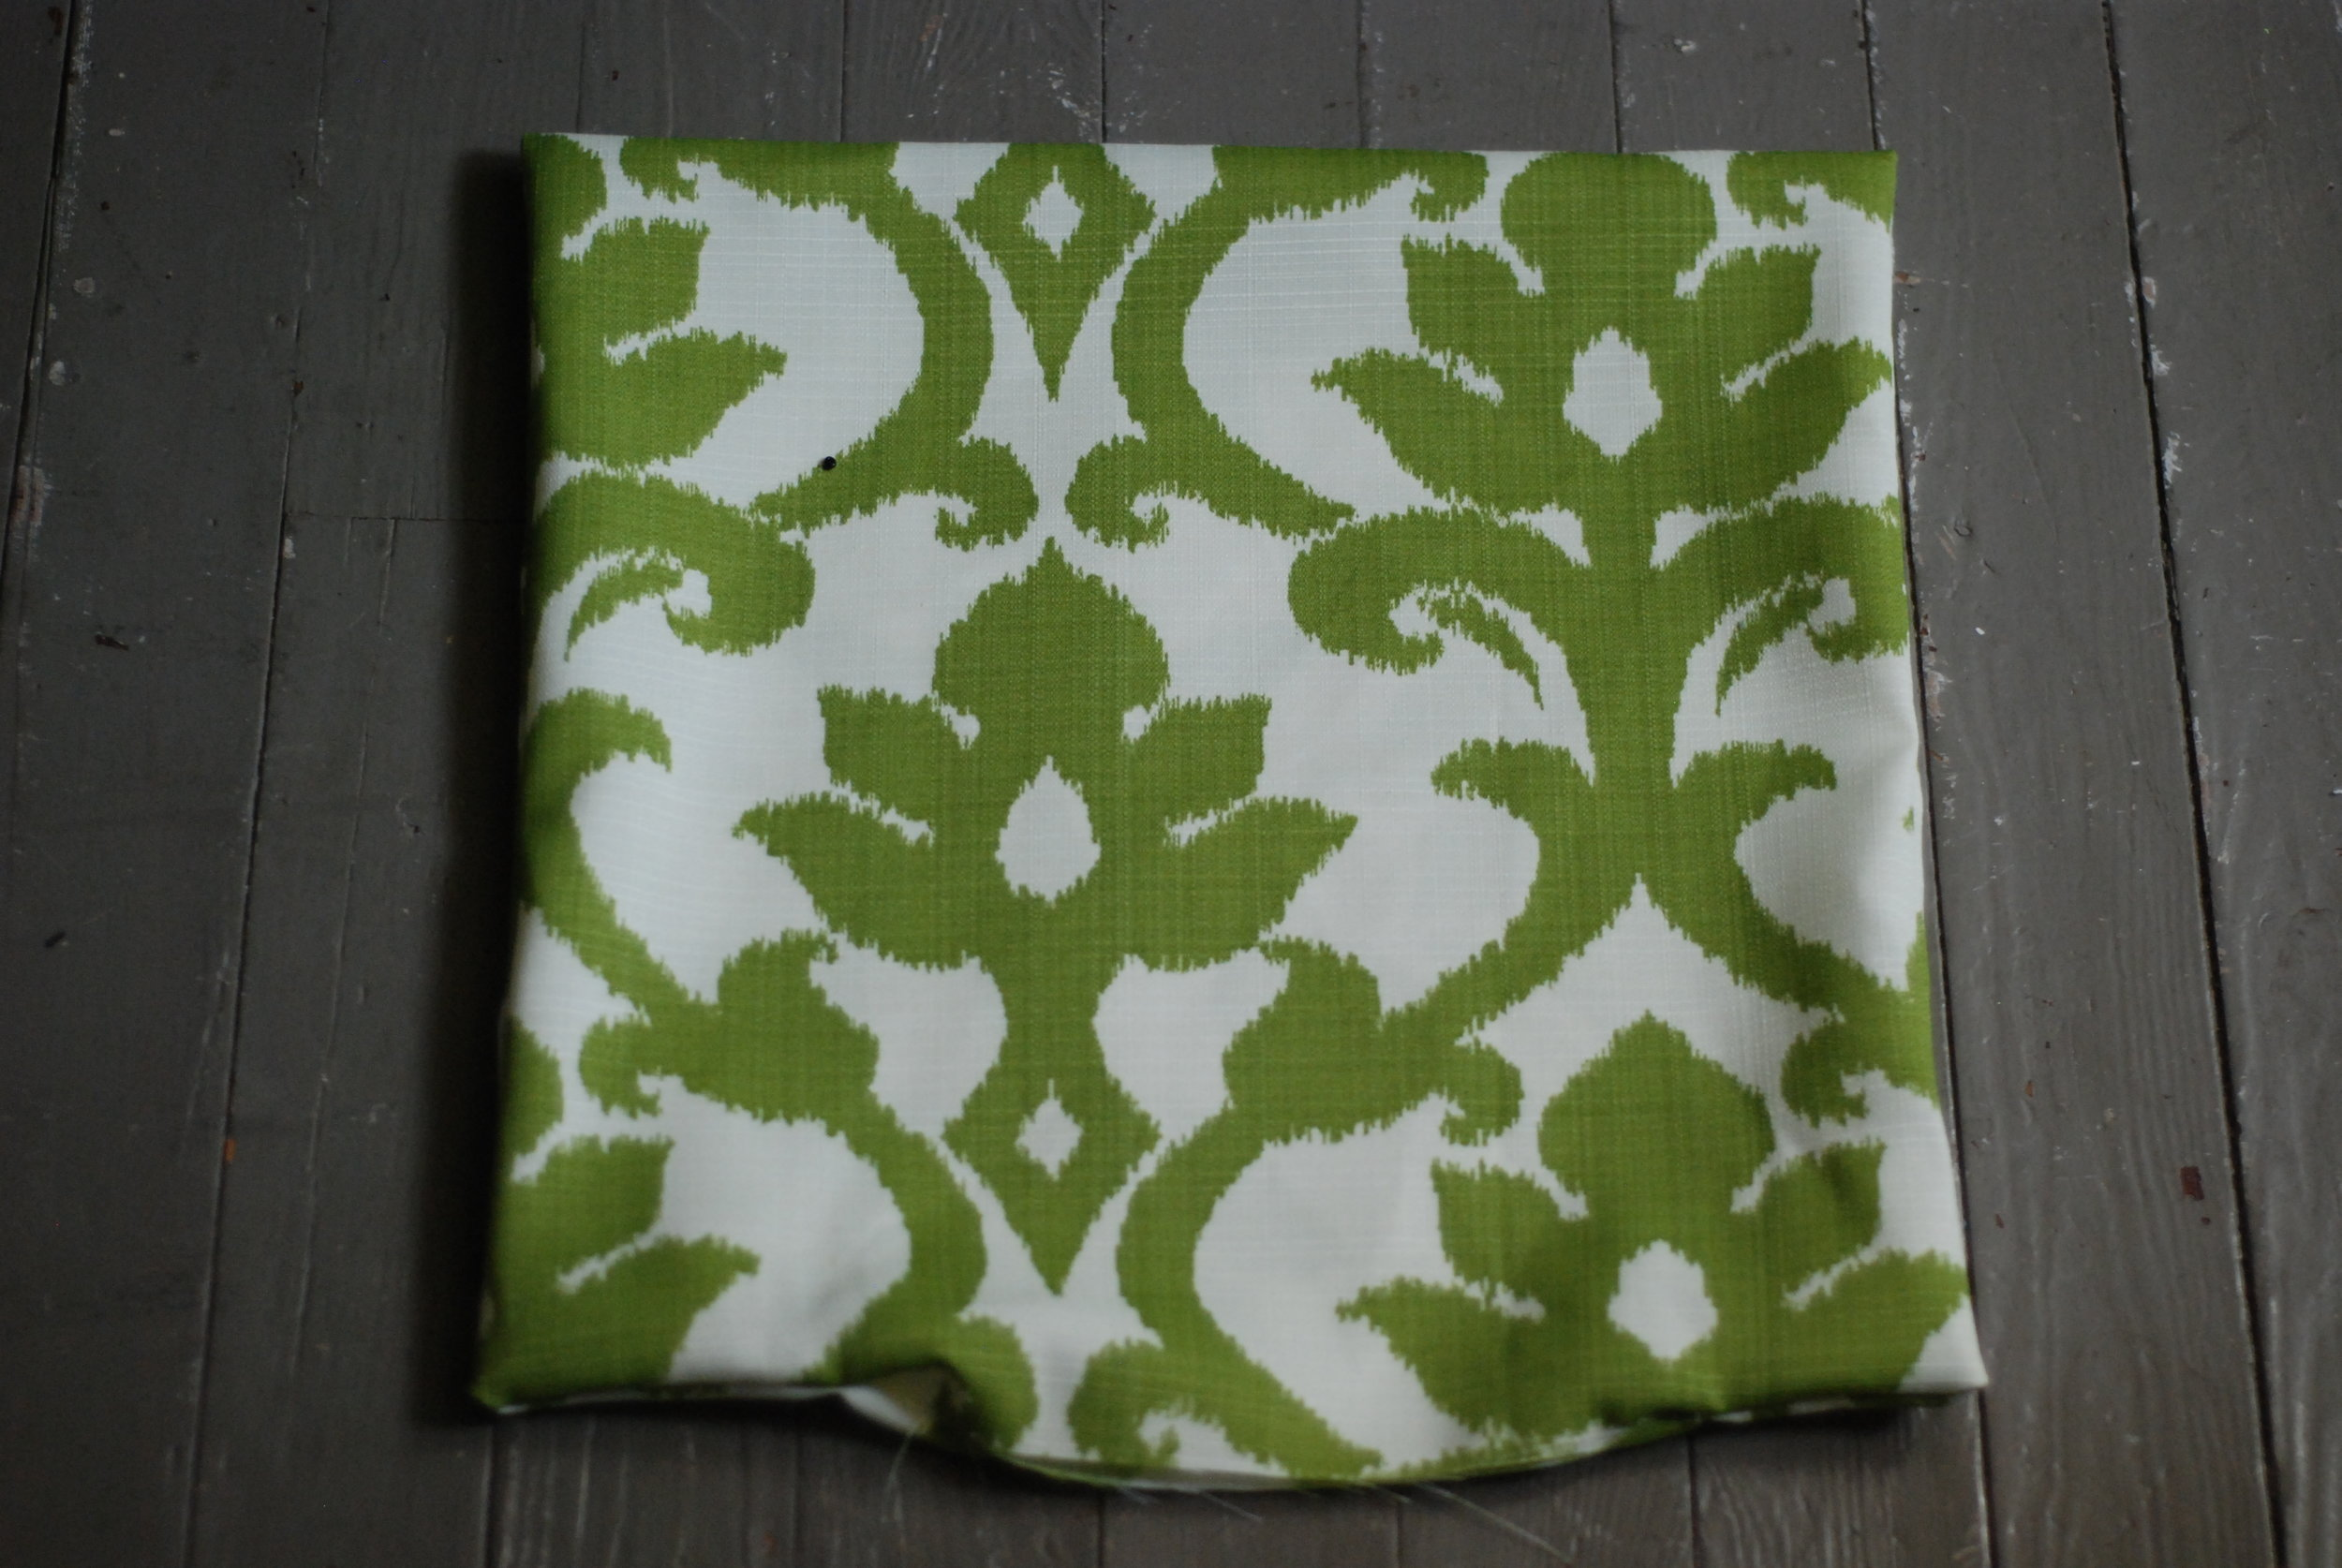 Turn pillow inside out. You can either stuff the pillow or buy a pillow frame from a local fabric store. Once you've stuffed your pillow, hand sew the opening.